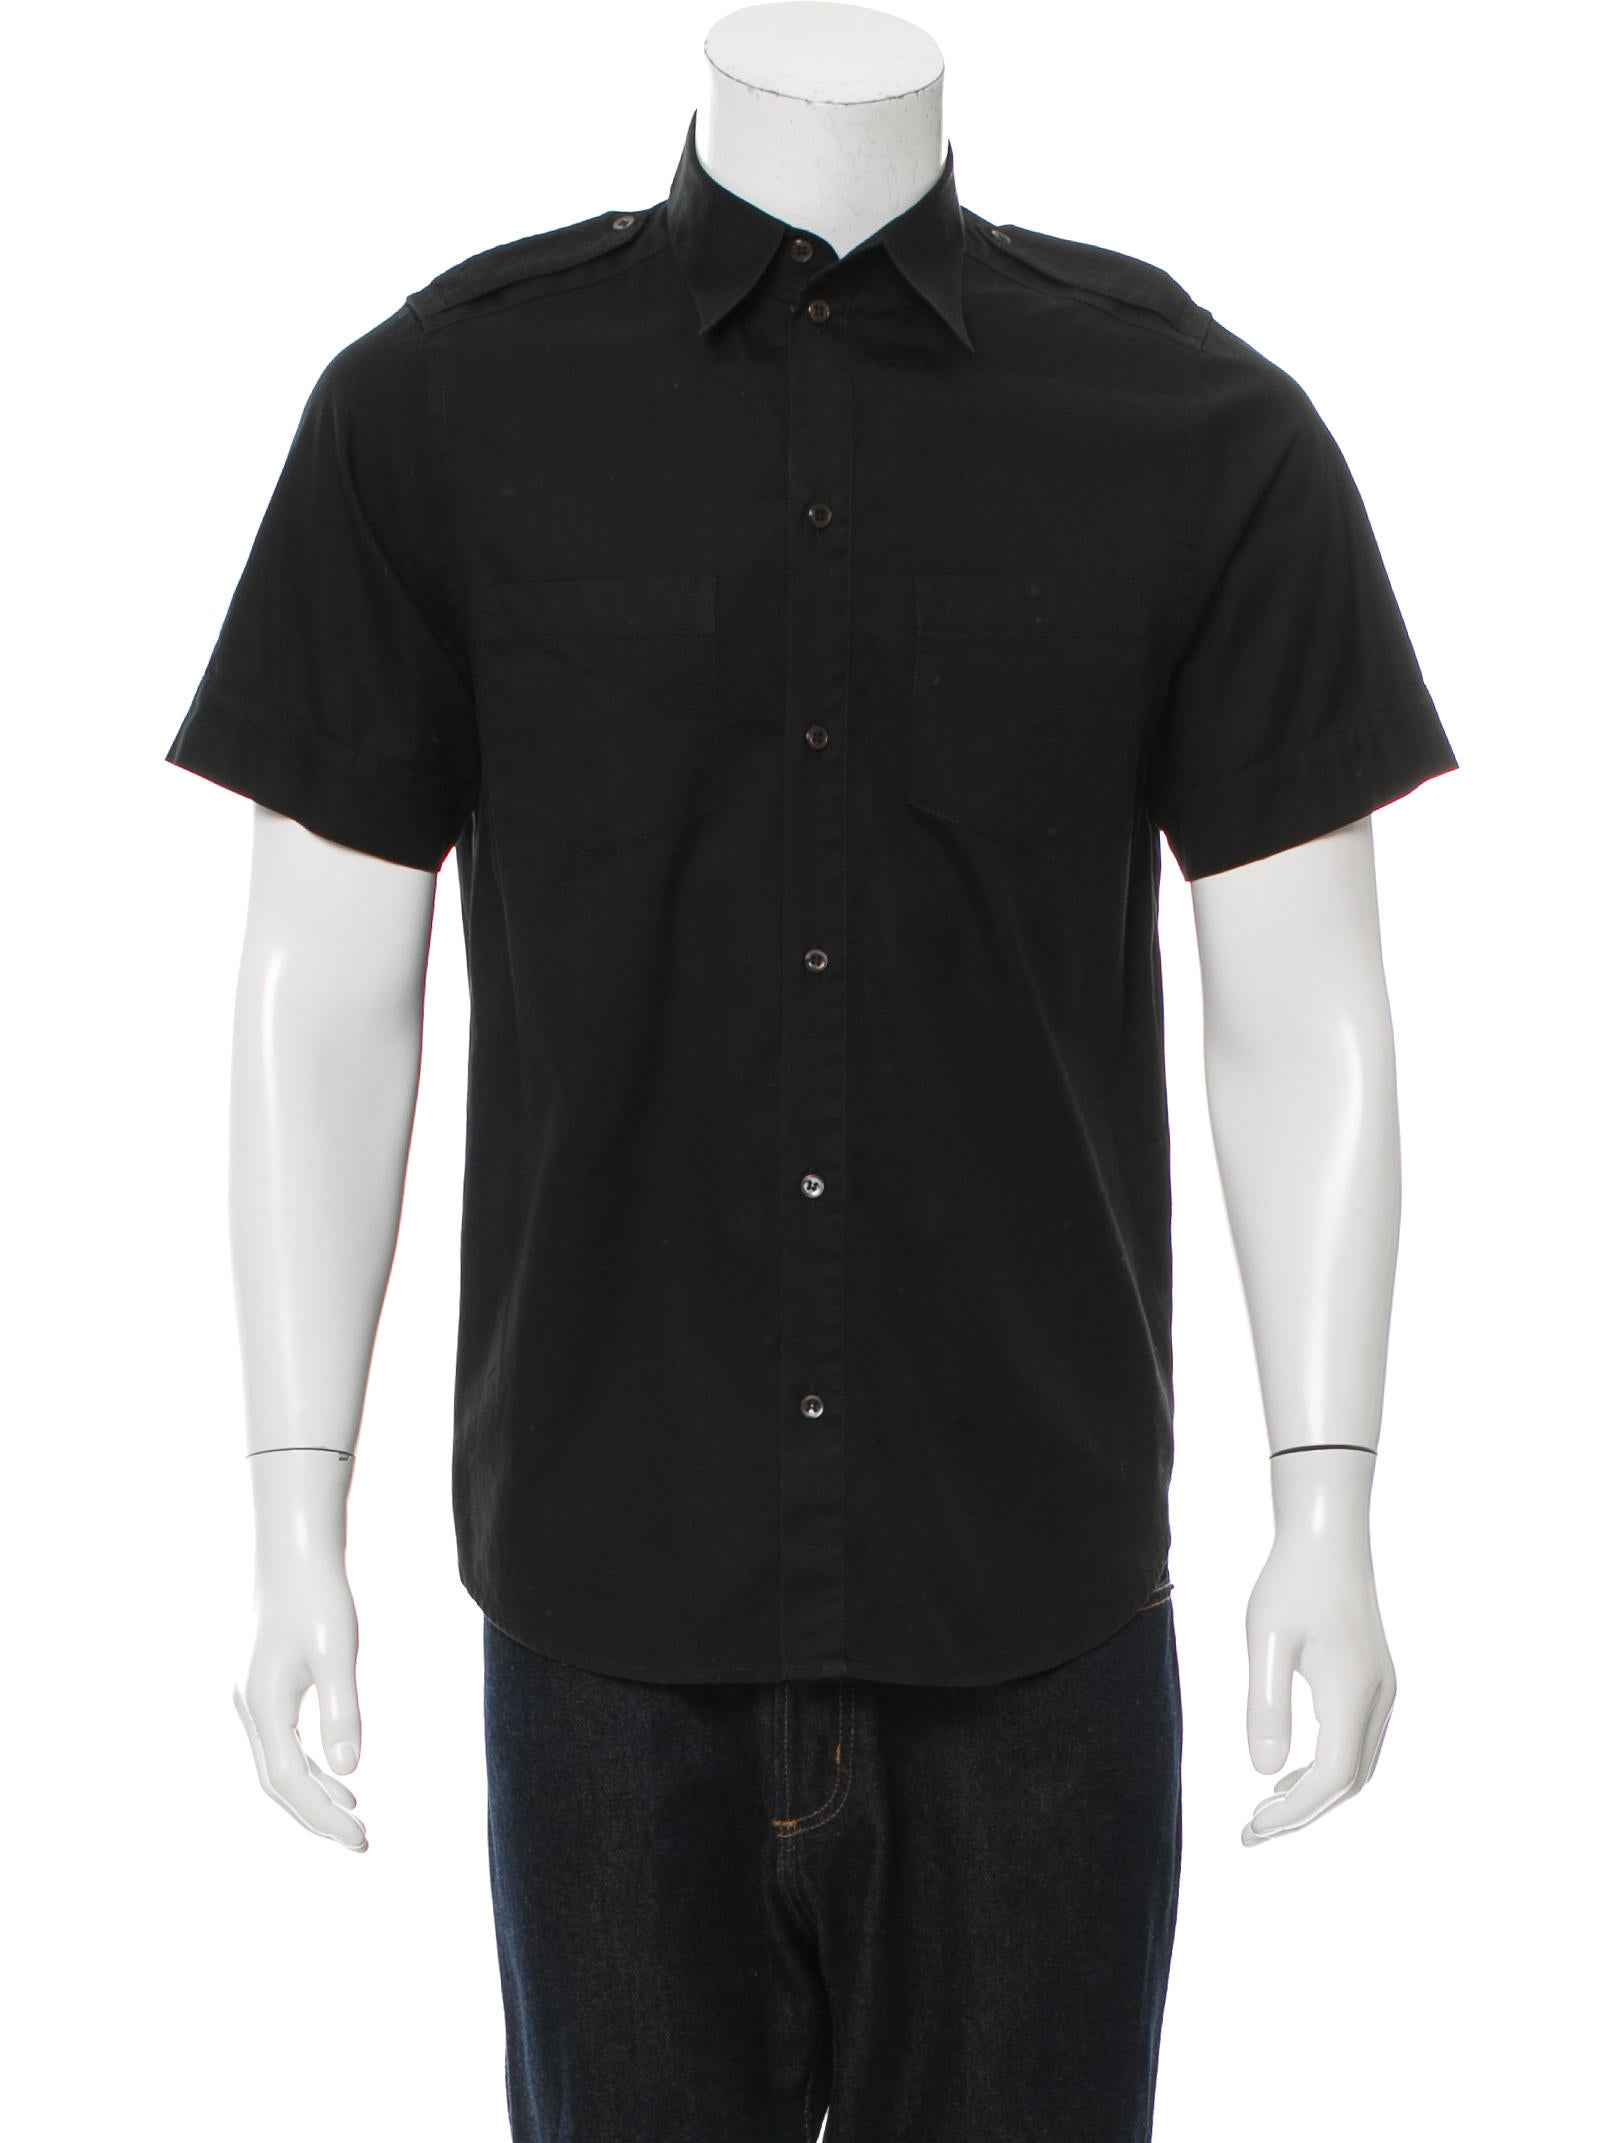 A p c short sleeve button up shirt clothing wa325079 for Short sleeve button up shirts